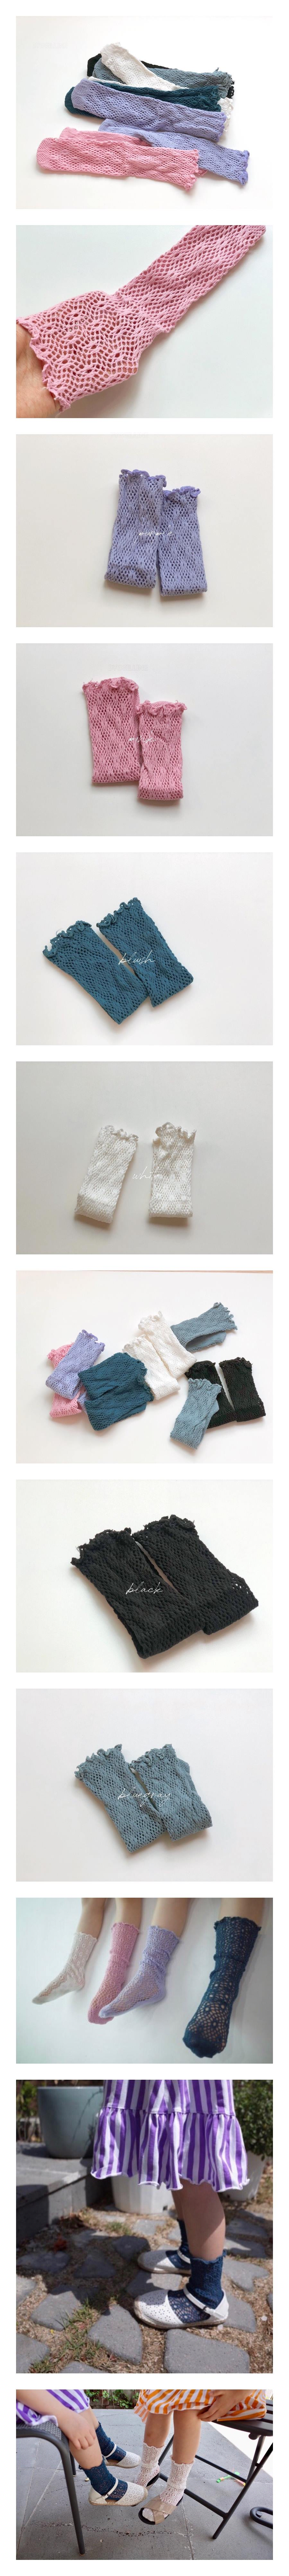 TEAMAND - Korean Children Fashion - #Kfashion4kids - Lace Socks